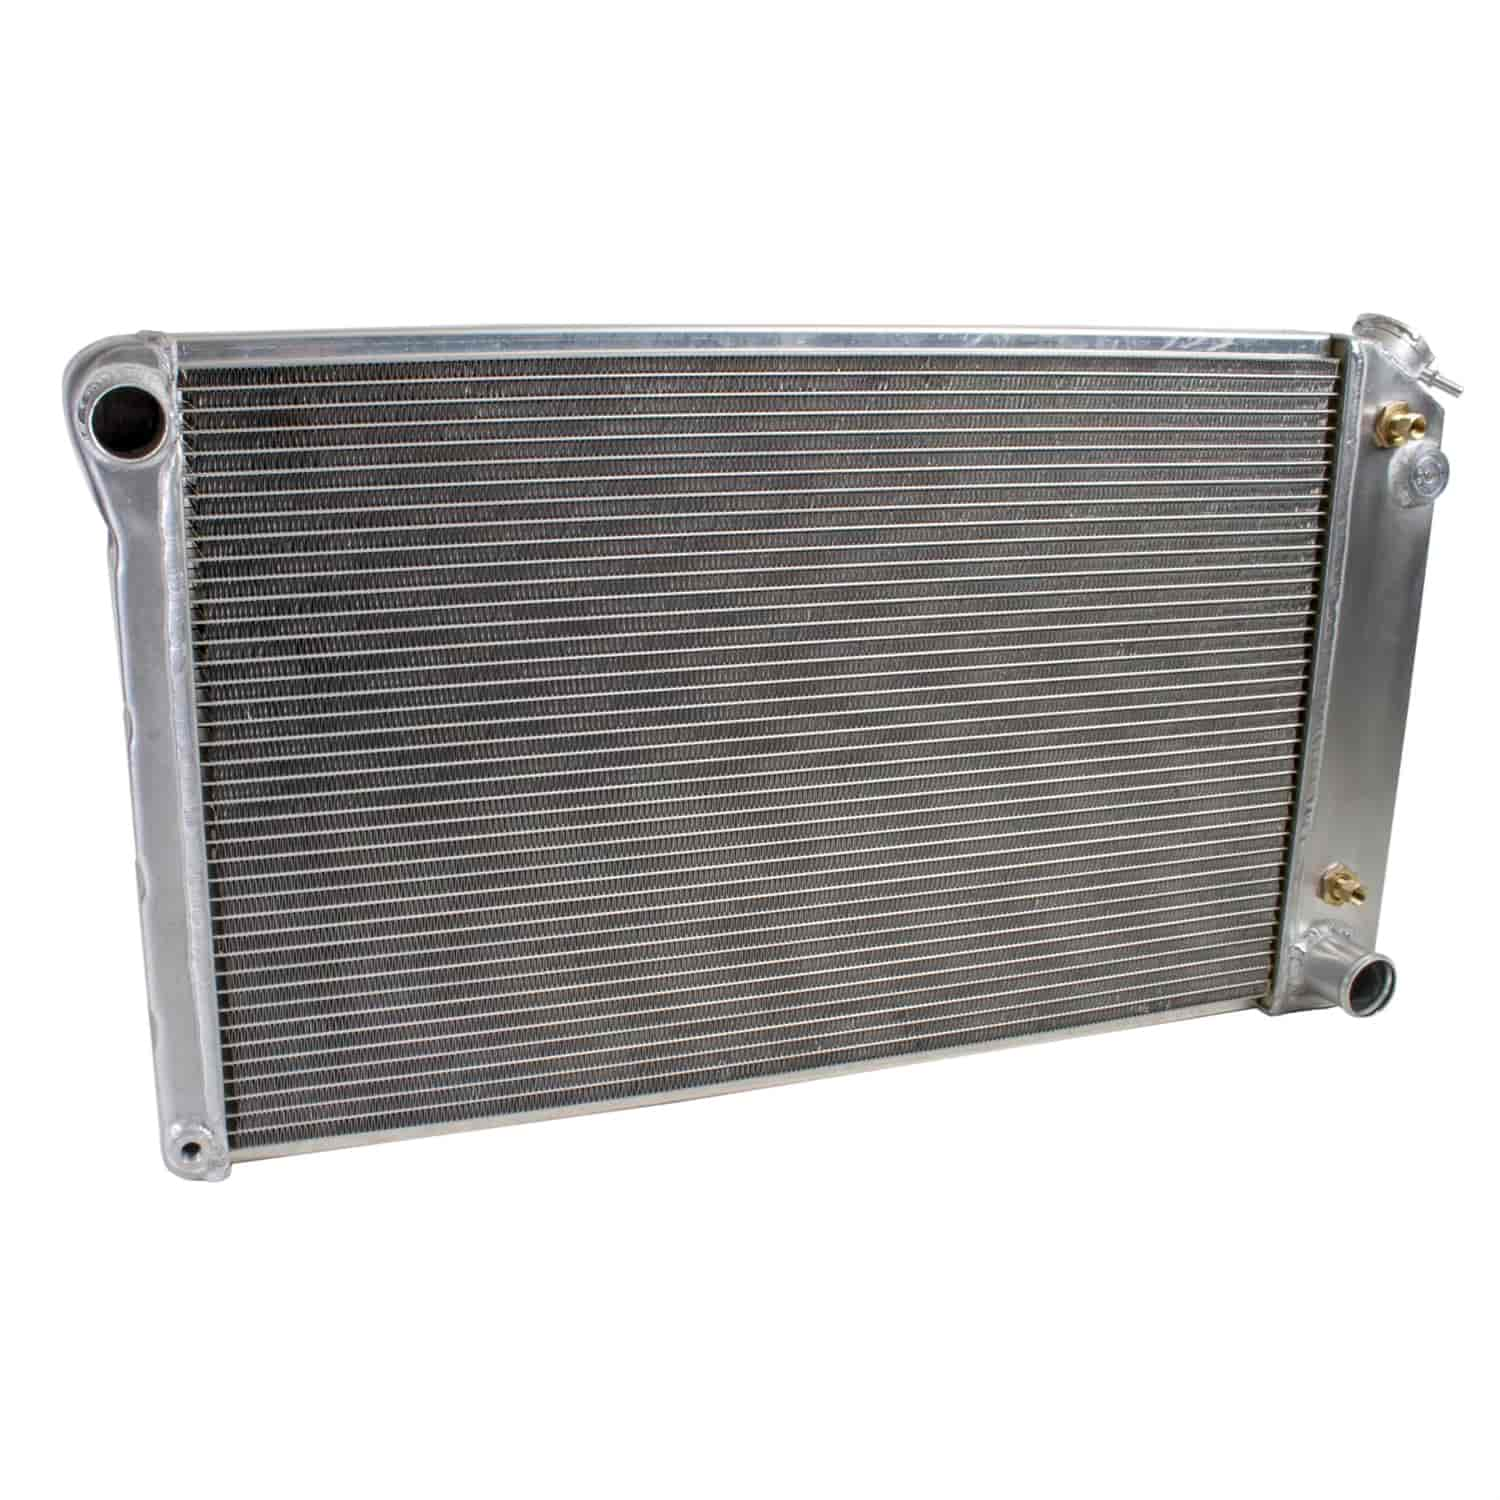 Griffin Radiators 6-70006